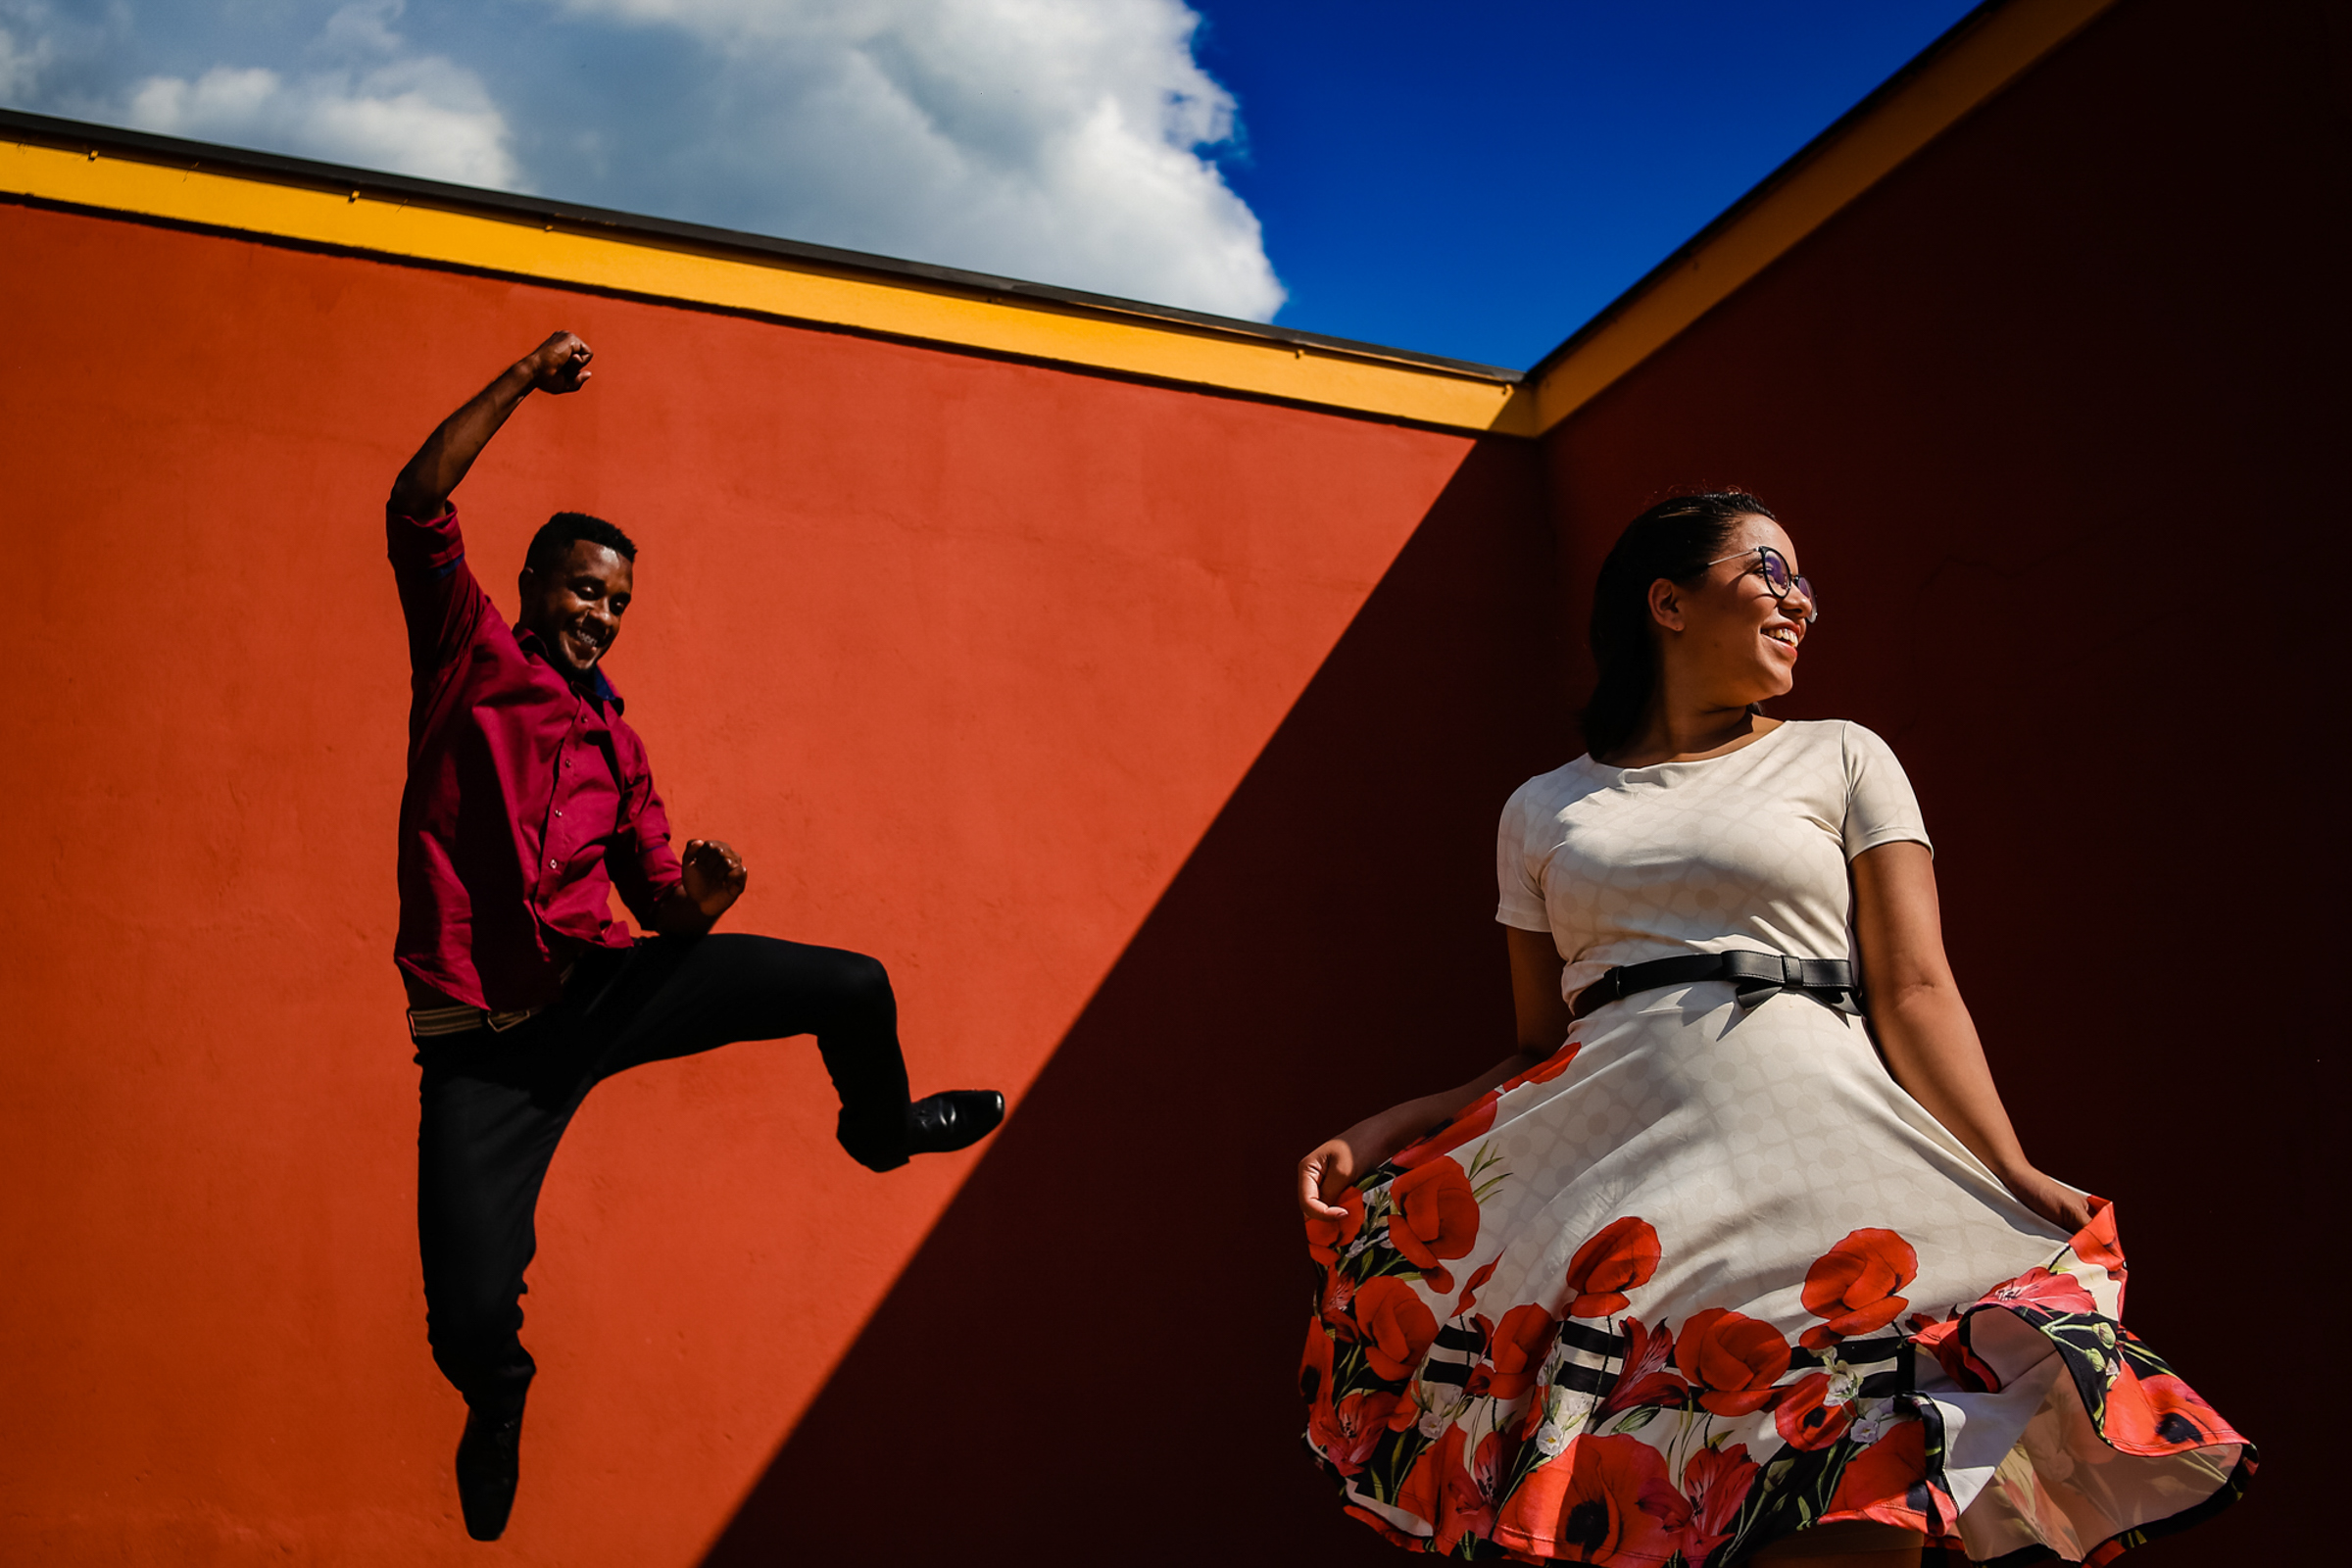 Groom leaps behind his bride - photo by Area da fotografia